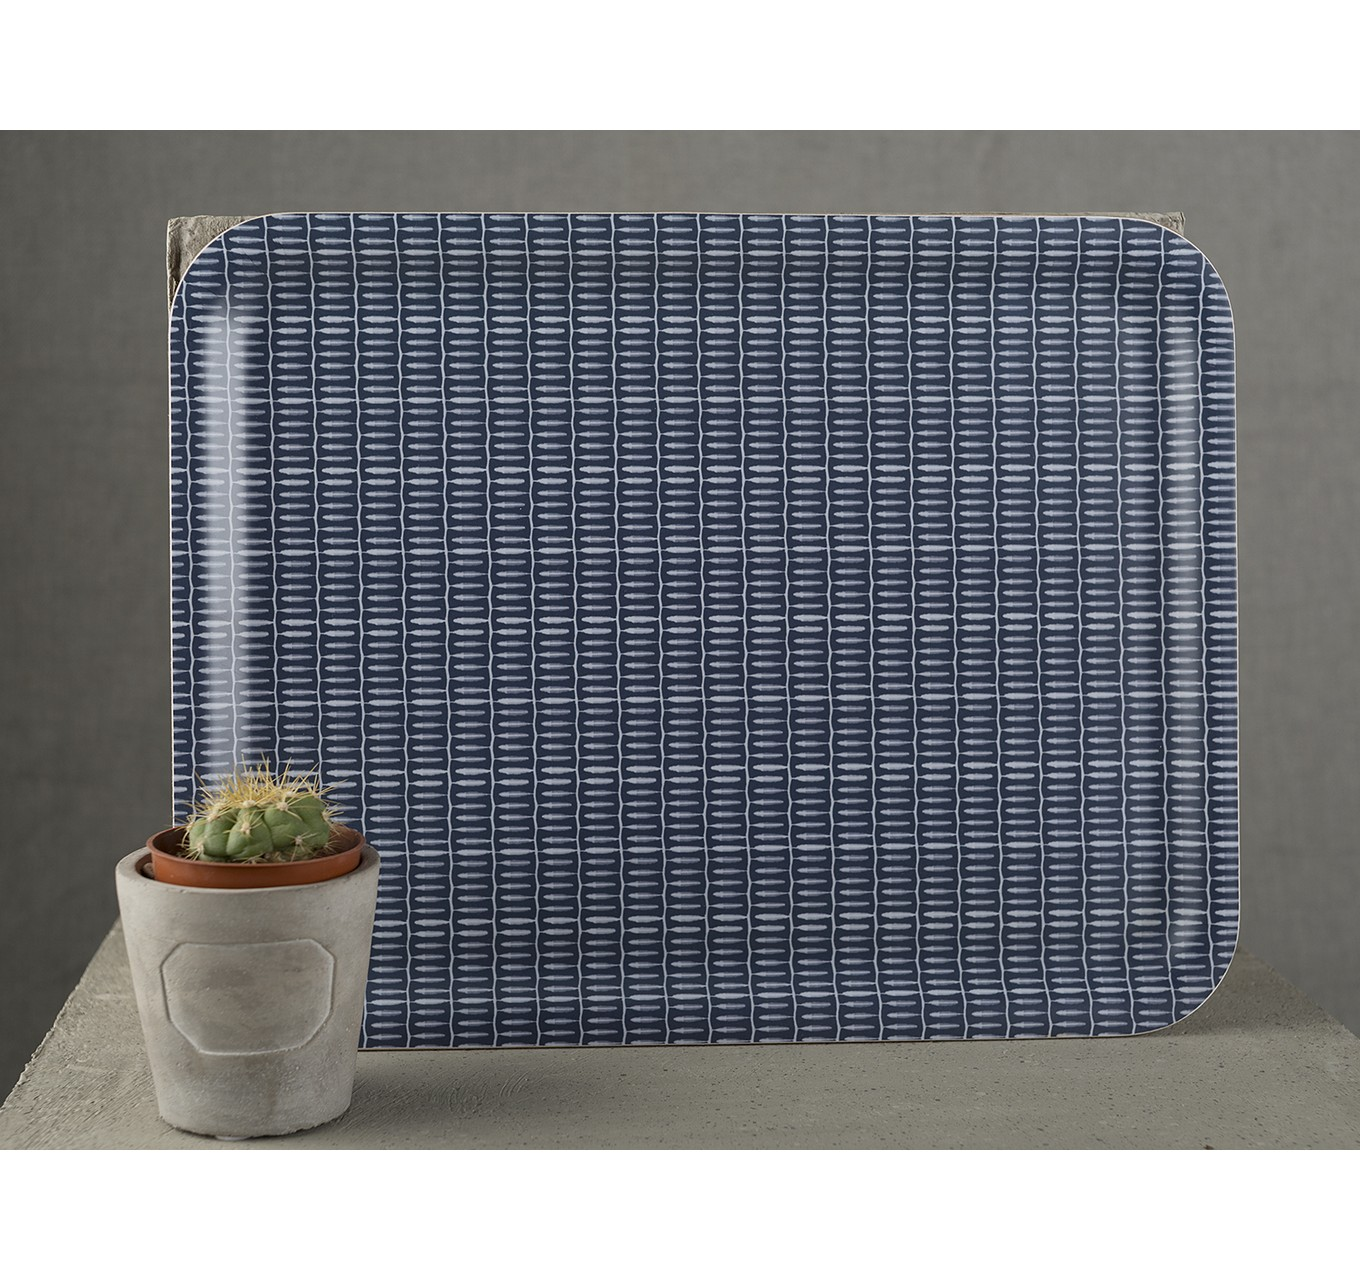 Drift Willow Blue Tray - Large